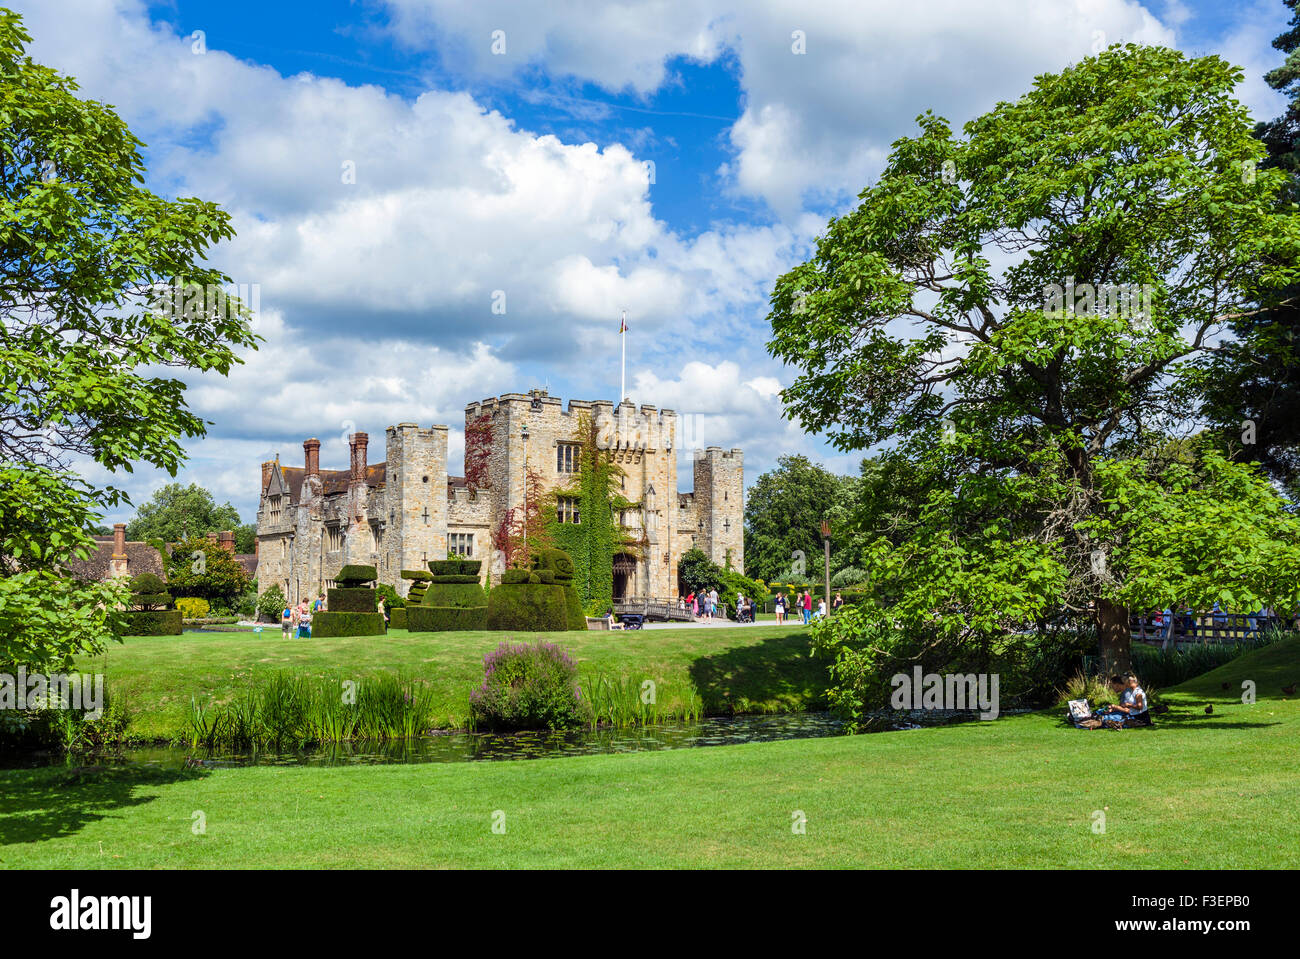 Couple having a picnic in front of Hever Castle, family home of Anne Boleyn, Hever, Kent, England, UK - Stock Image